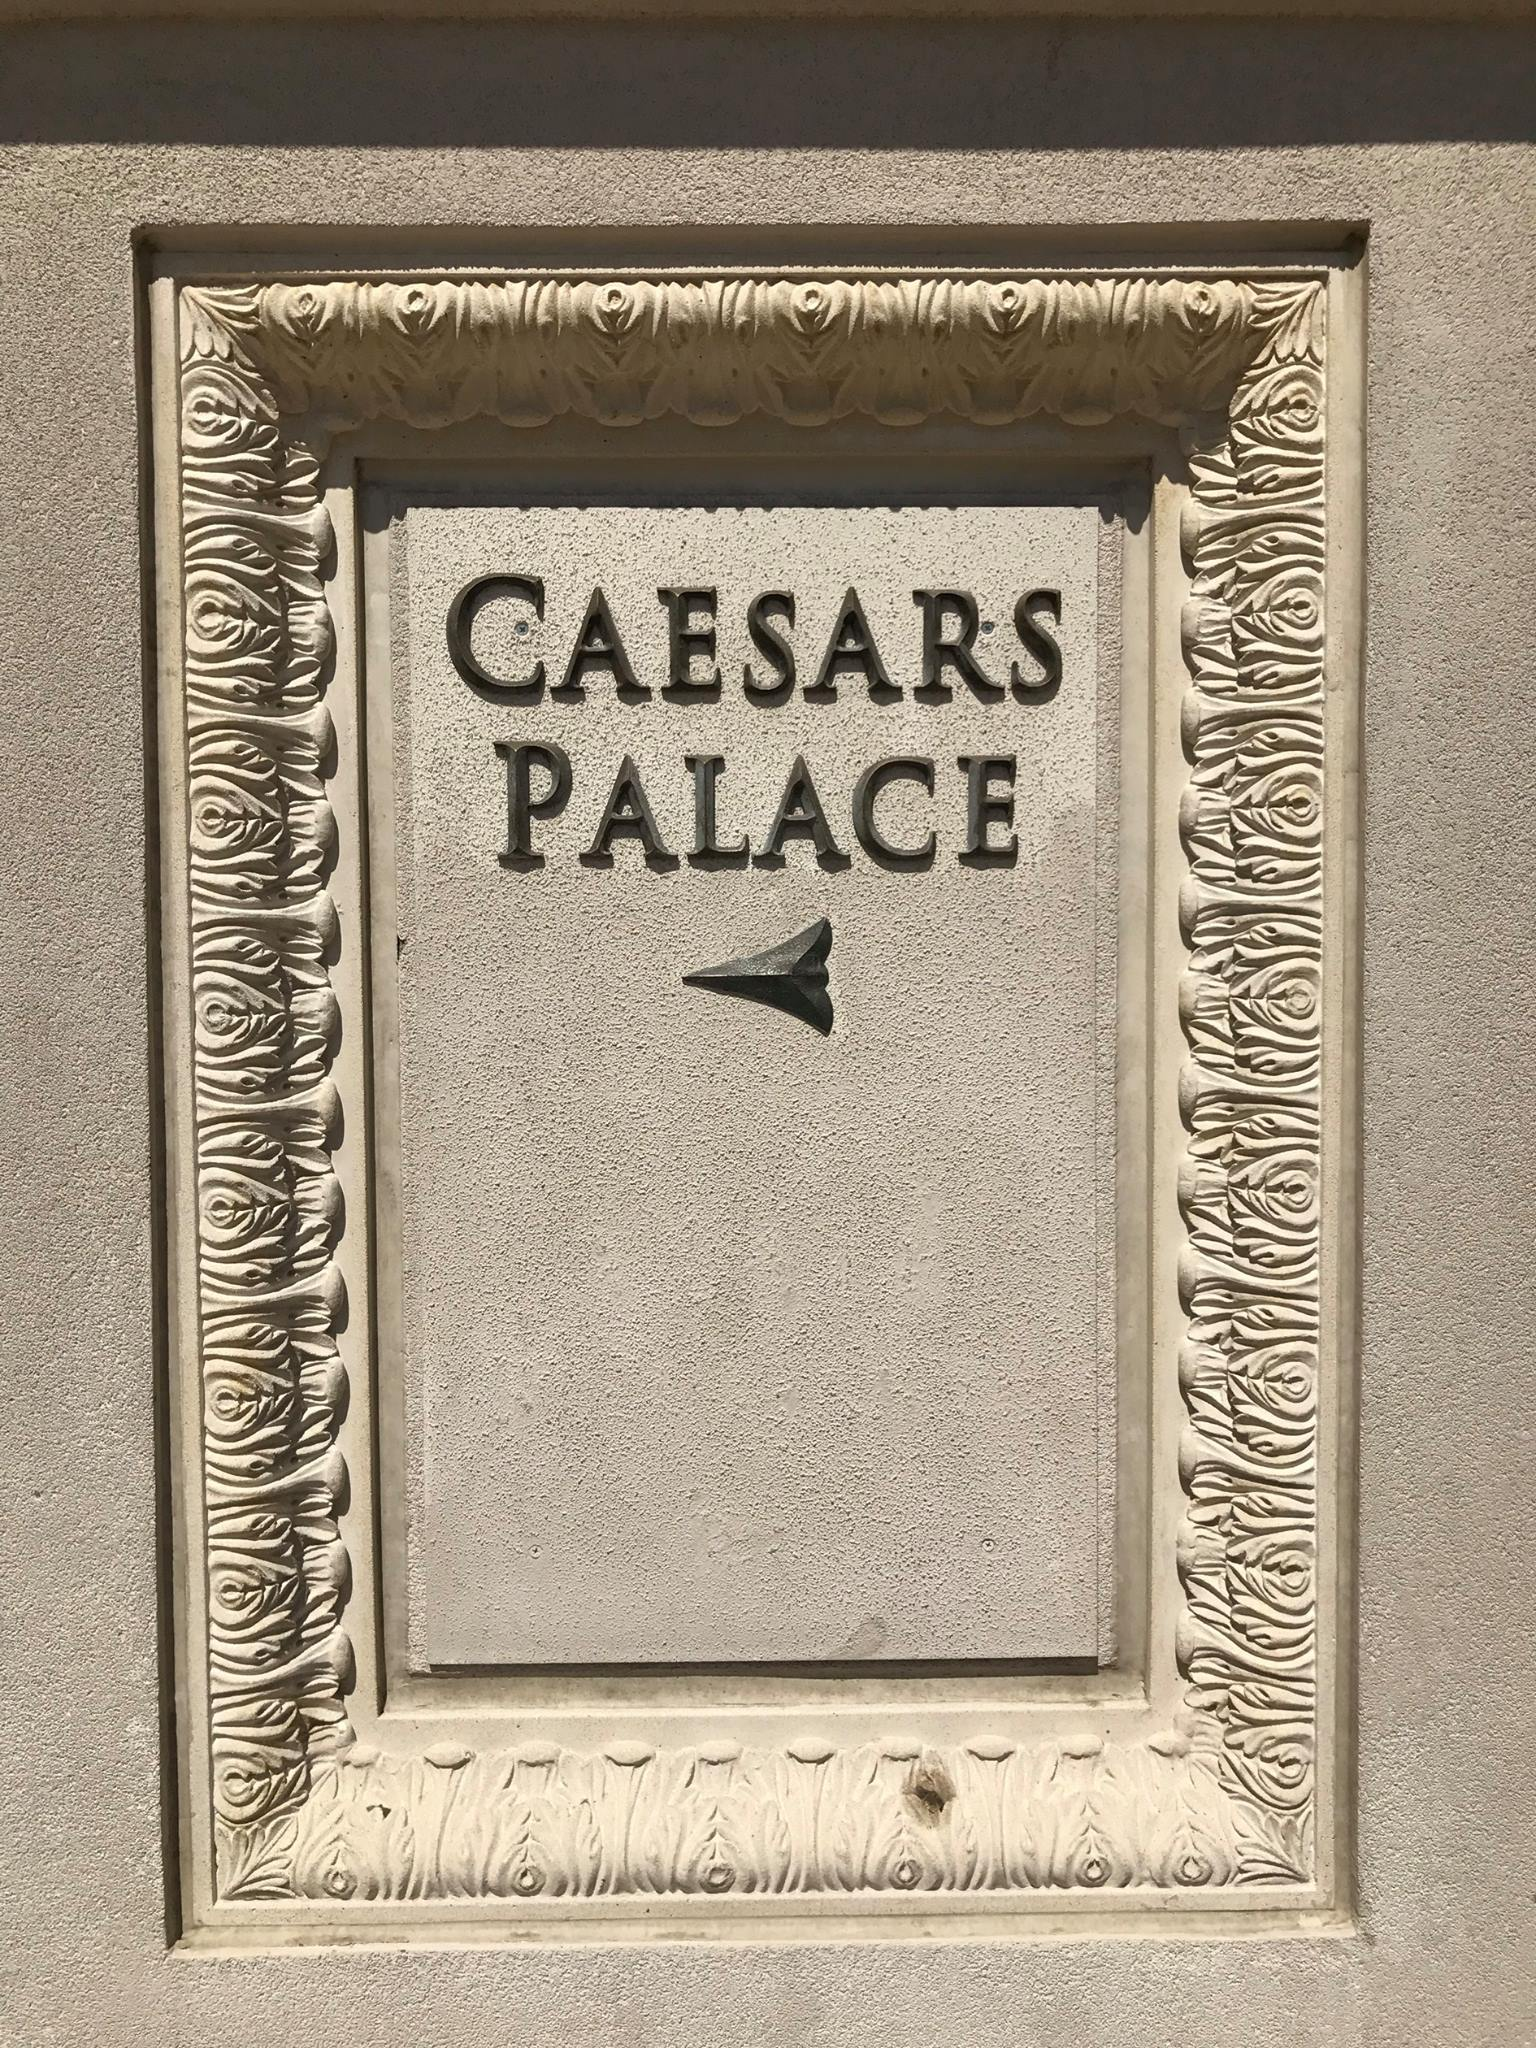 Picture of Caesars Palace Entrance sign